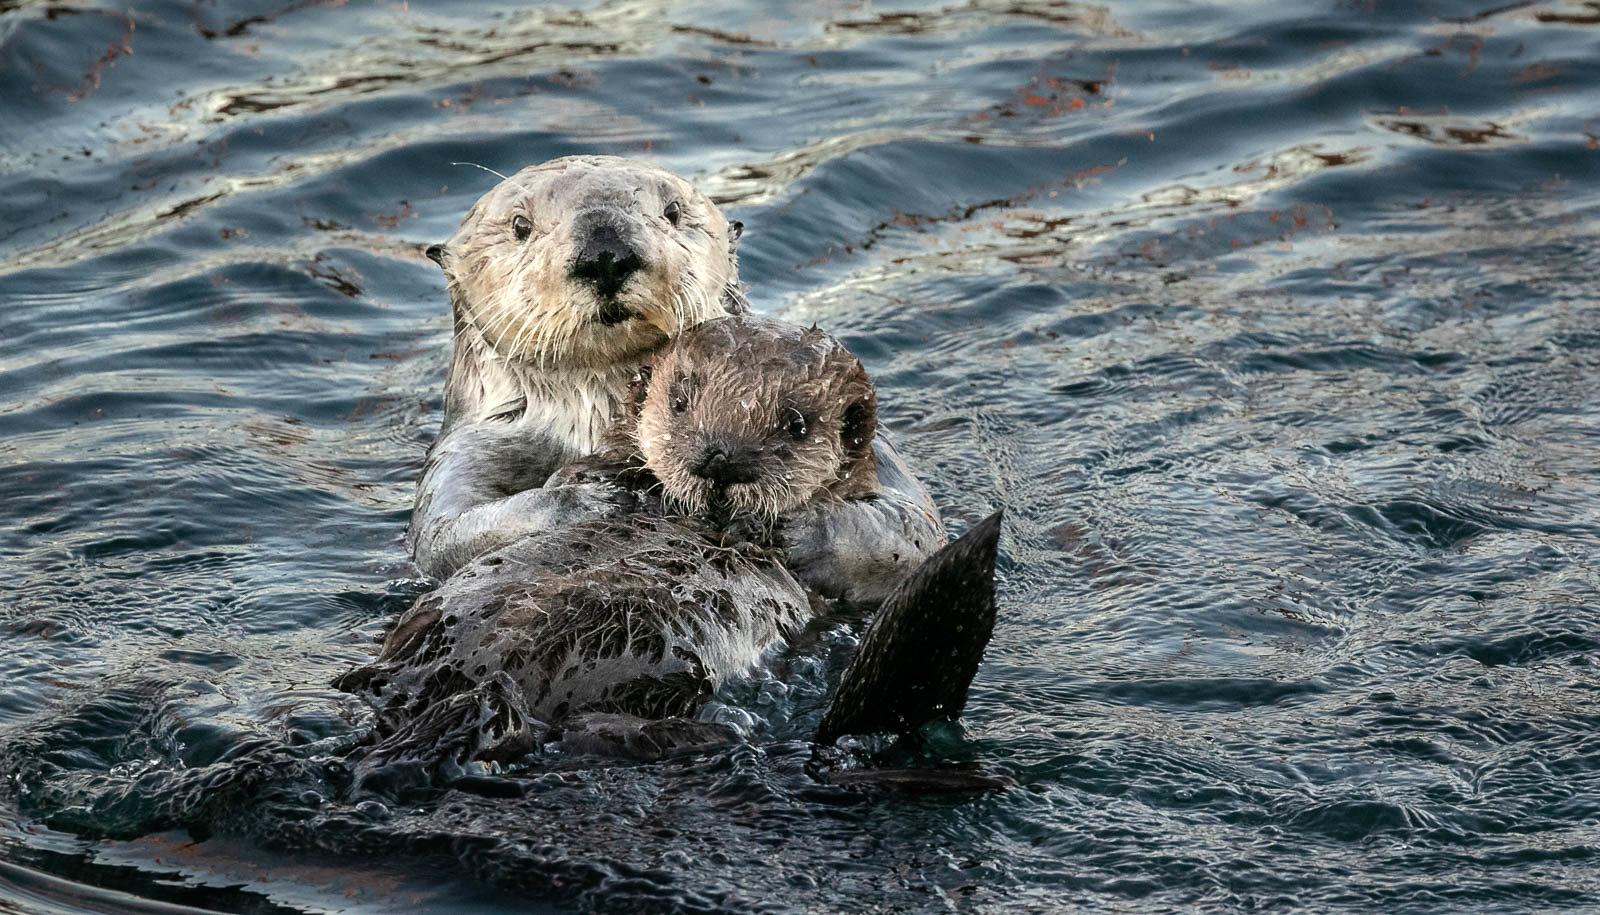 A sea otter and her young - very cute